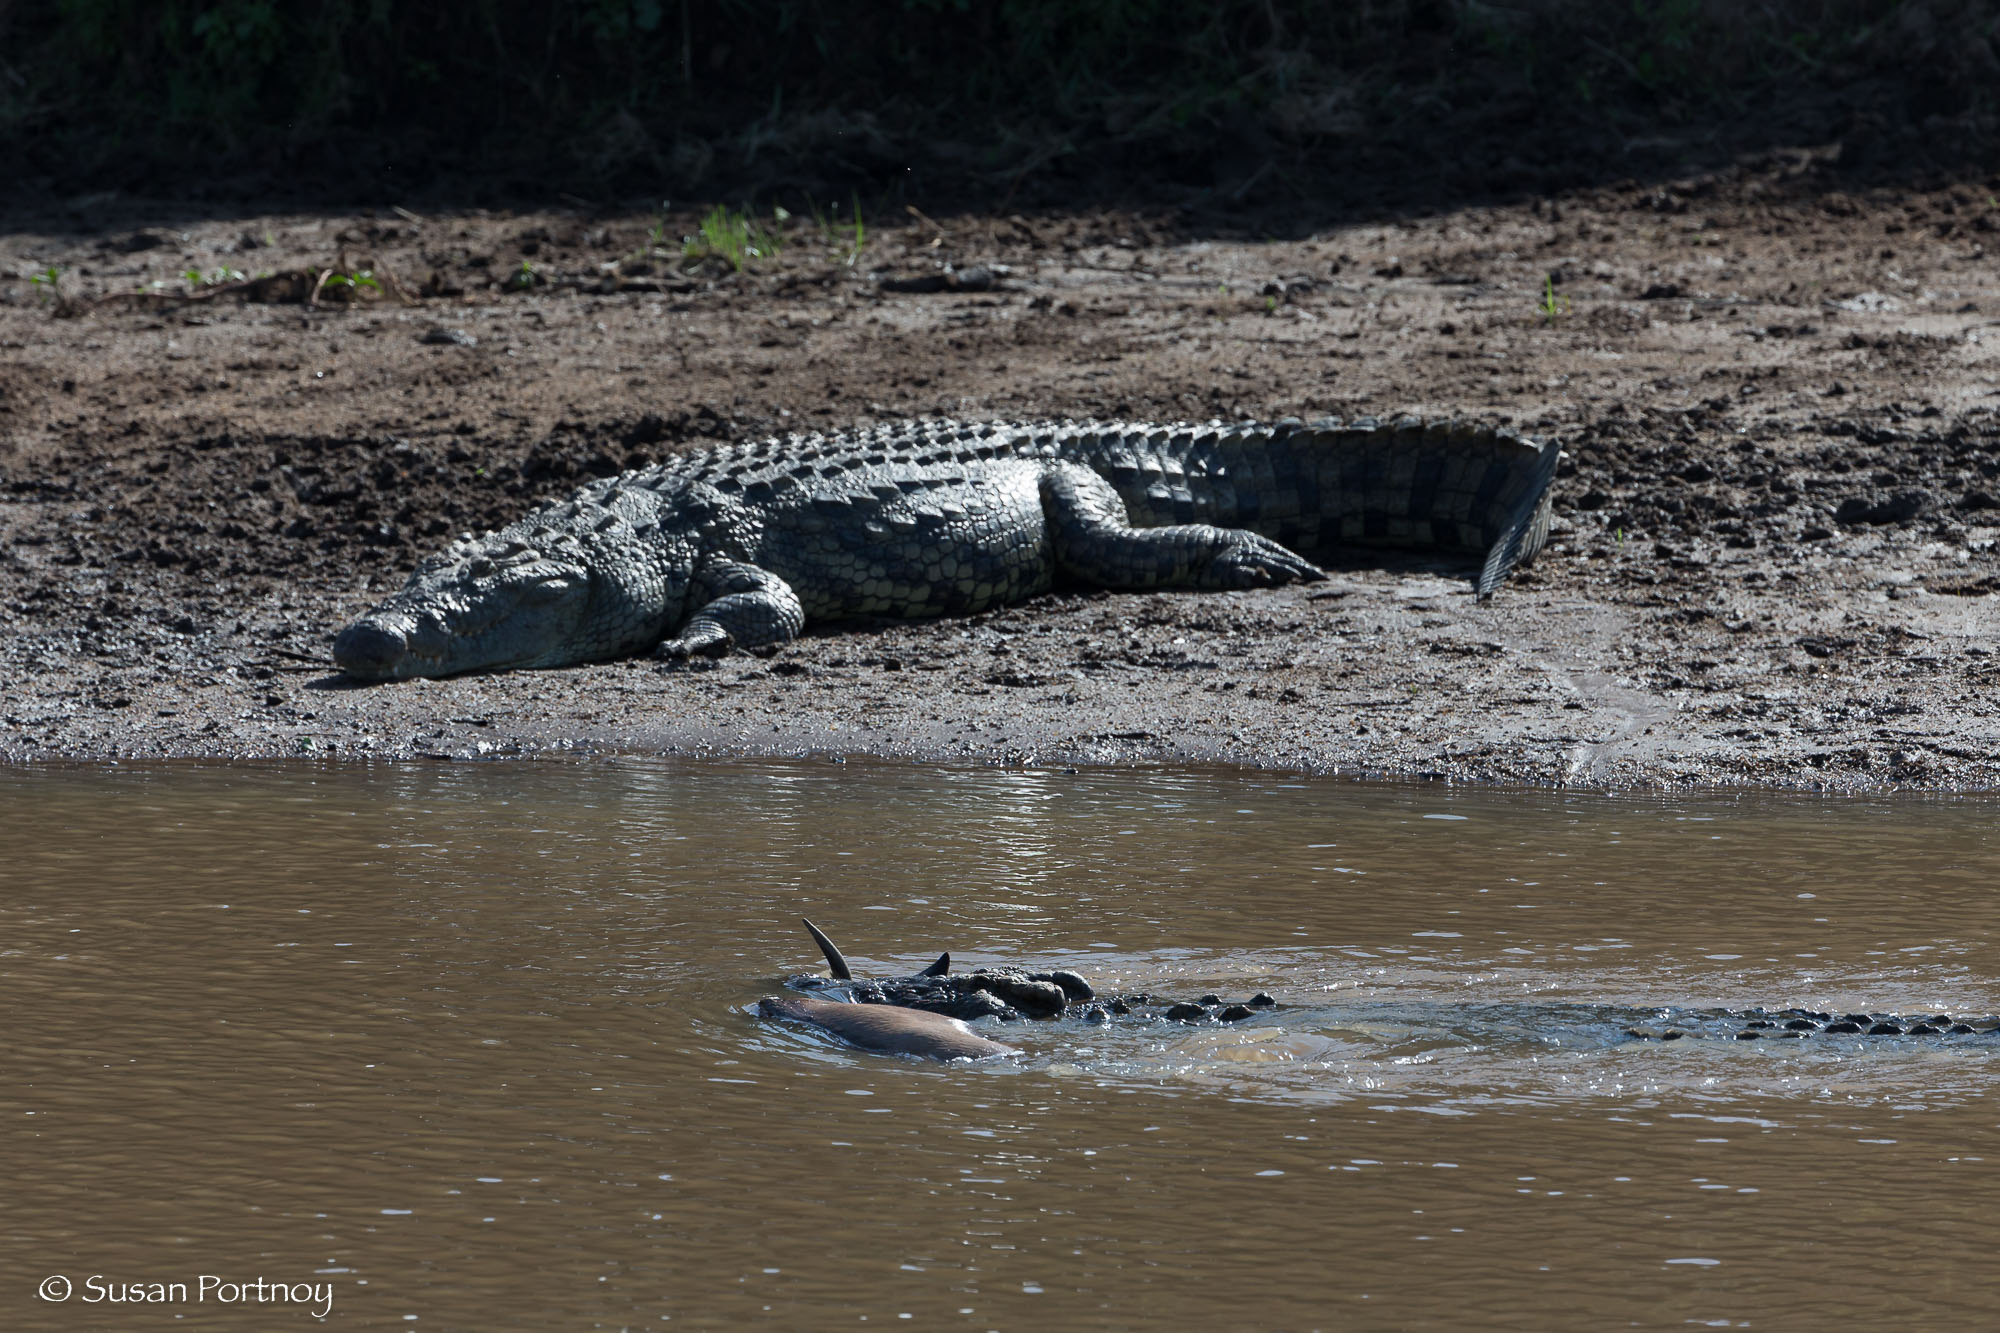 crocodile with a wildebeest in its jaws swims in the Mara River in front of a crocodile sunning on the shore